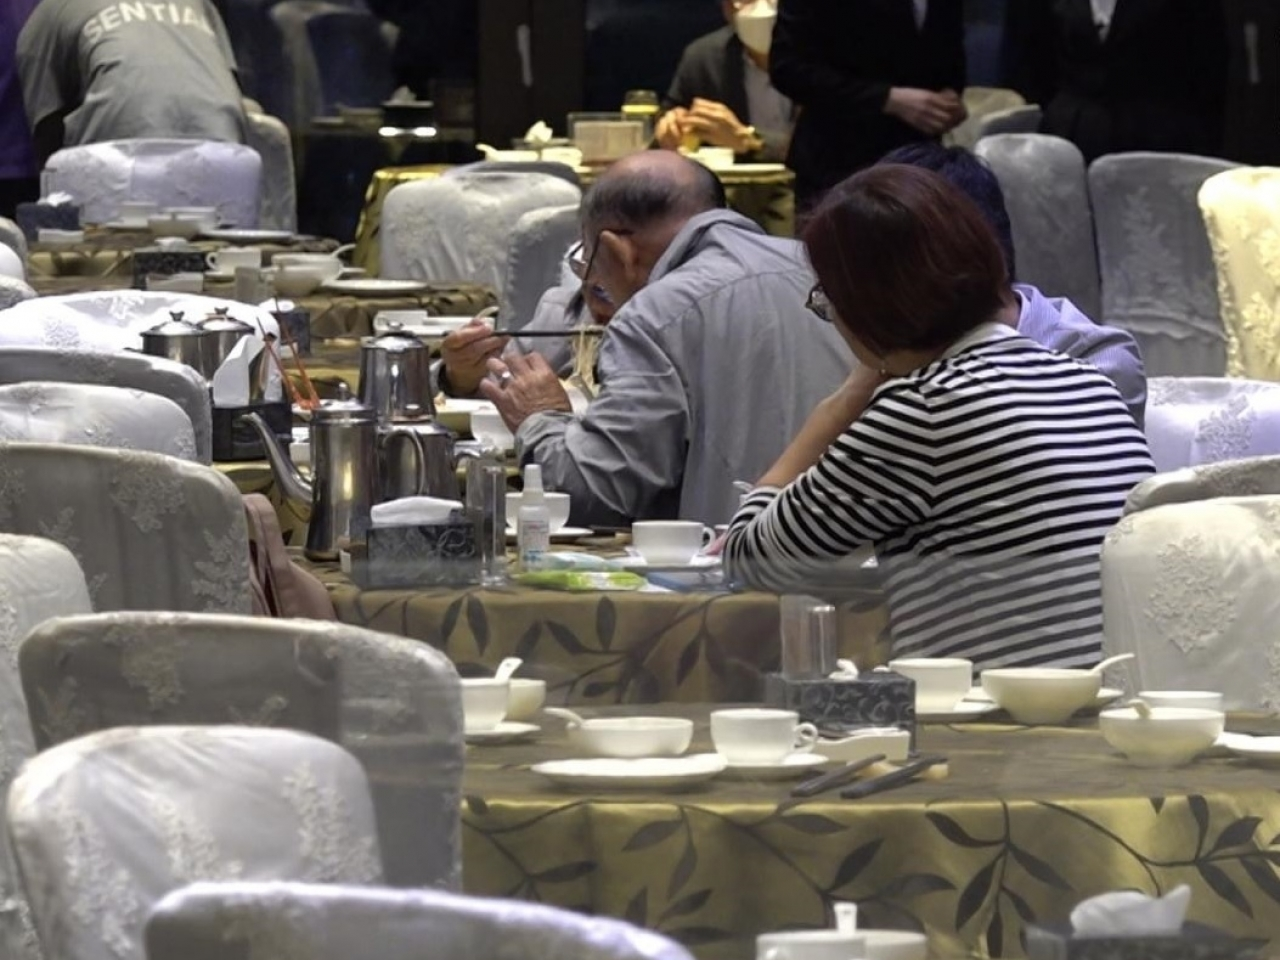 Up to 240 people can join banquets from Thursday as long as most are jabbed and all staff are vaccinated. Photo: RTHK